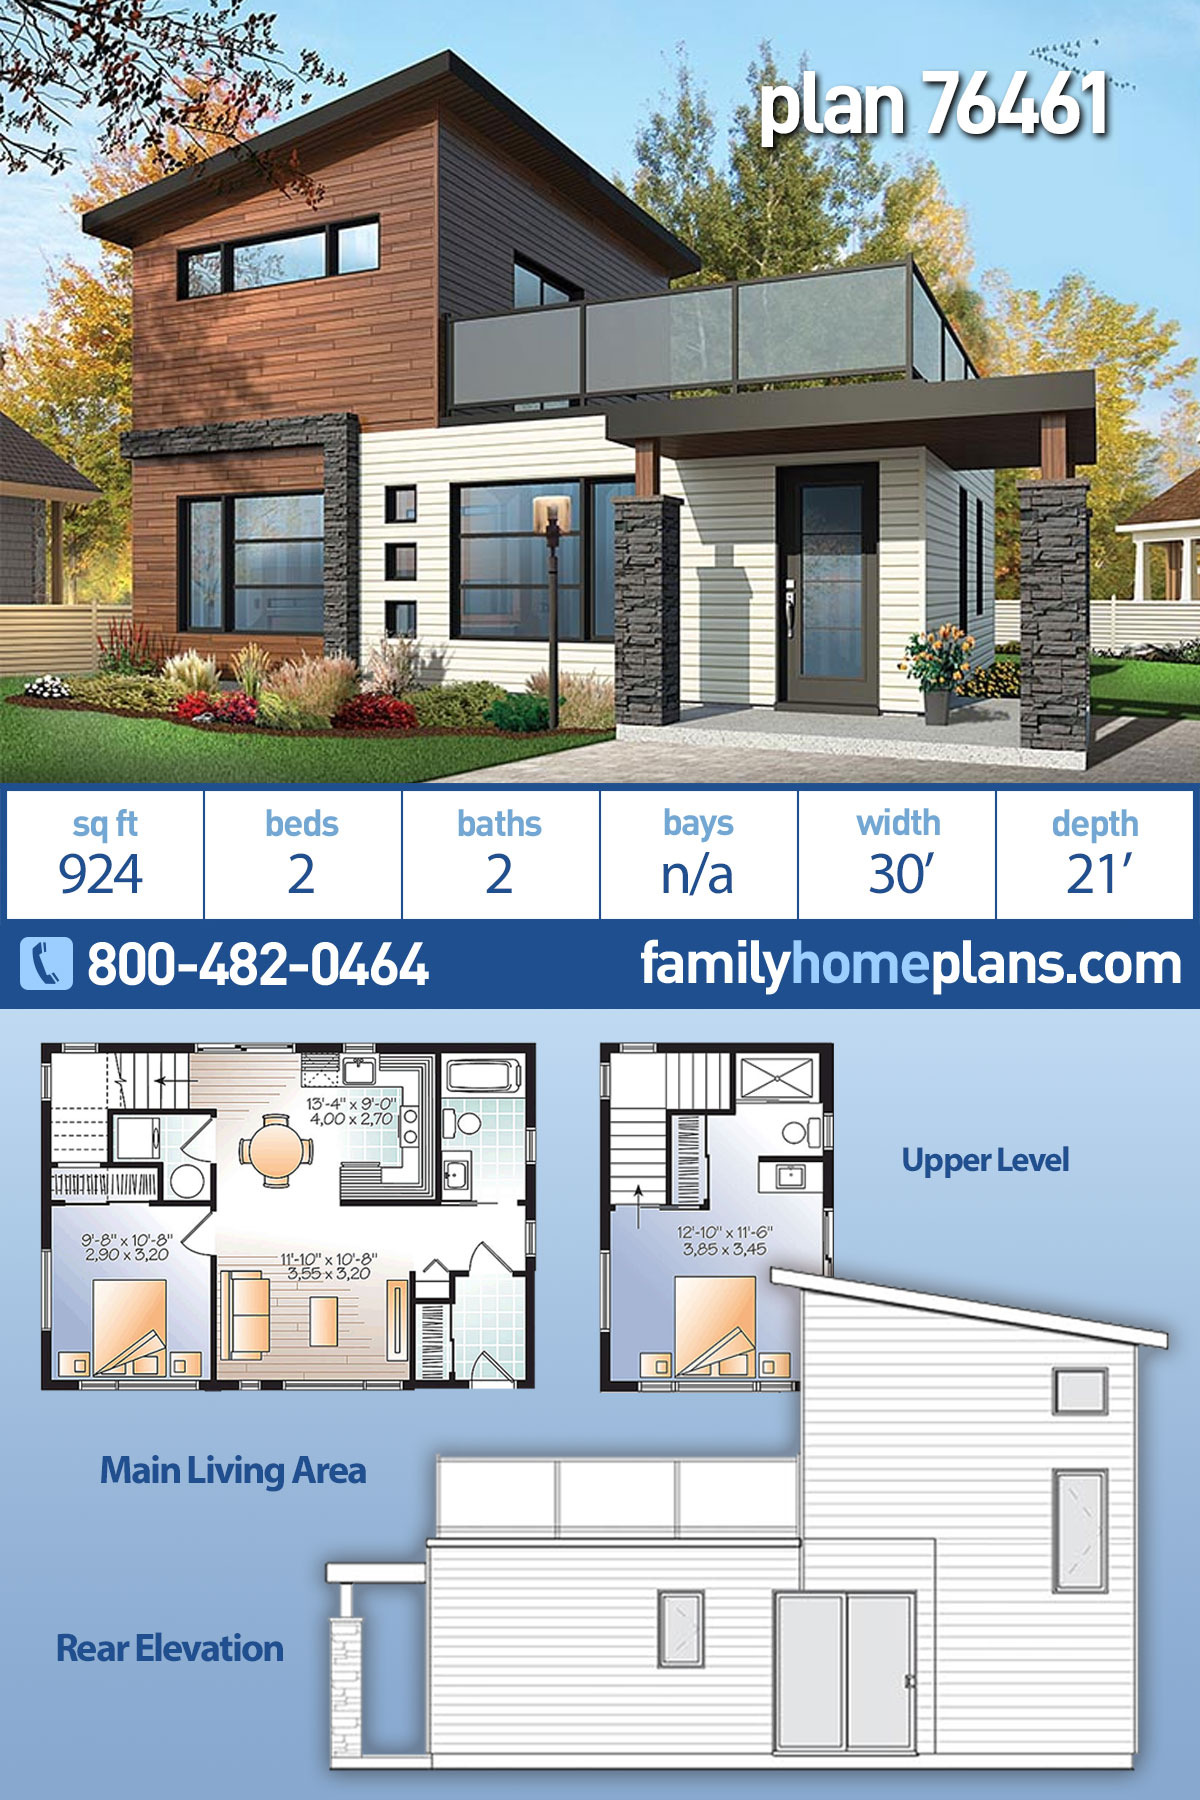 Best Modern Home Plans New Modern Style House Plan with 2 Bed 2 Bath